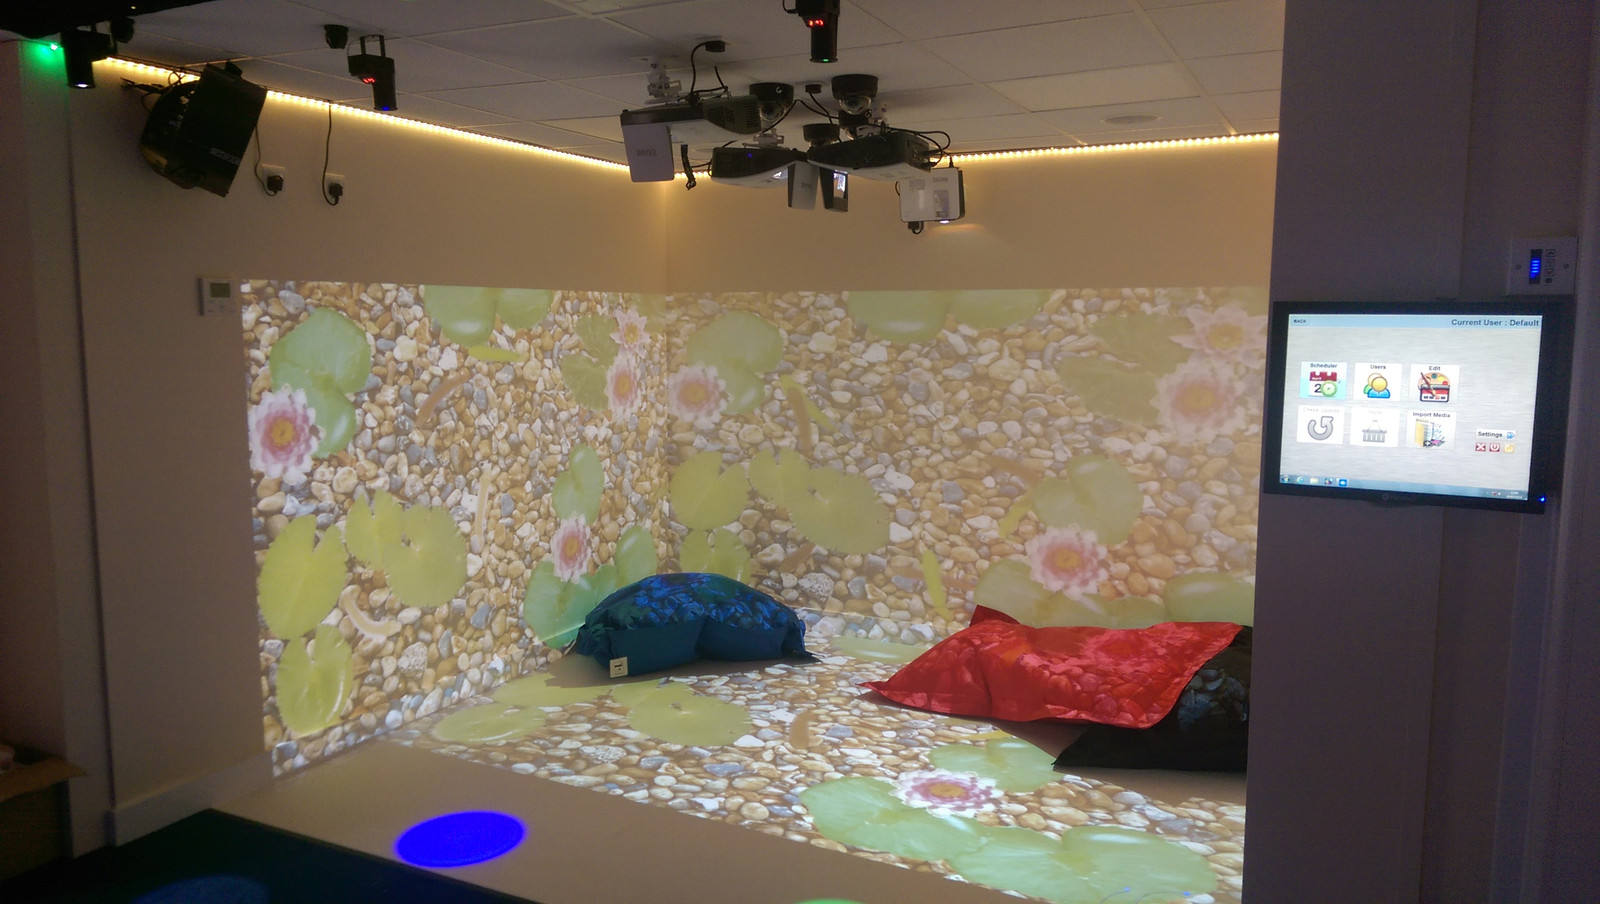 Immersive sensory rooms sensory rooms sensory for Escape room equipment